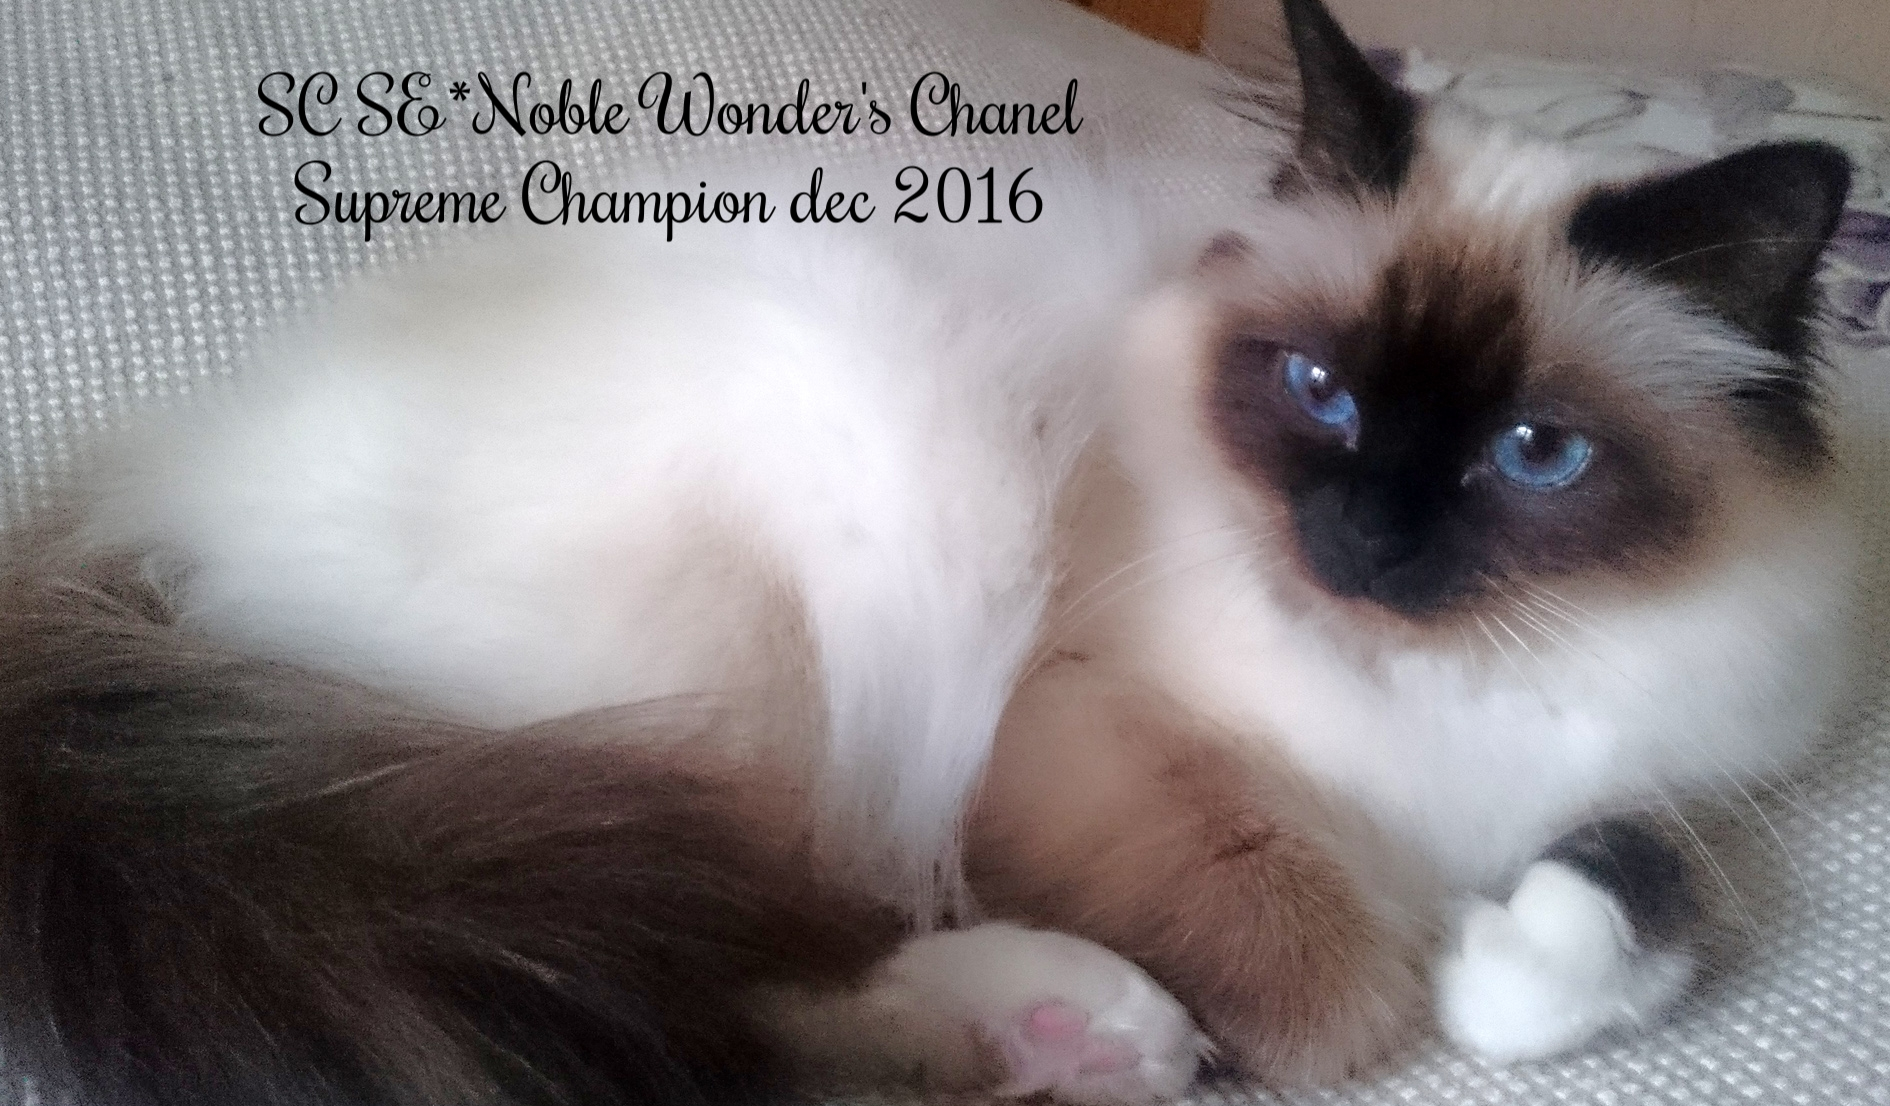 SC SE*Noble Wonder's Chanel, Supreme Champion